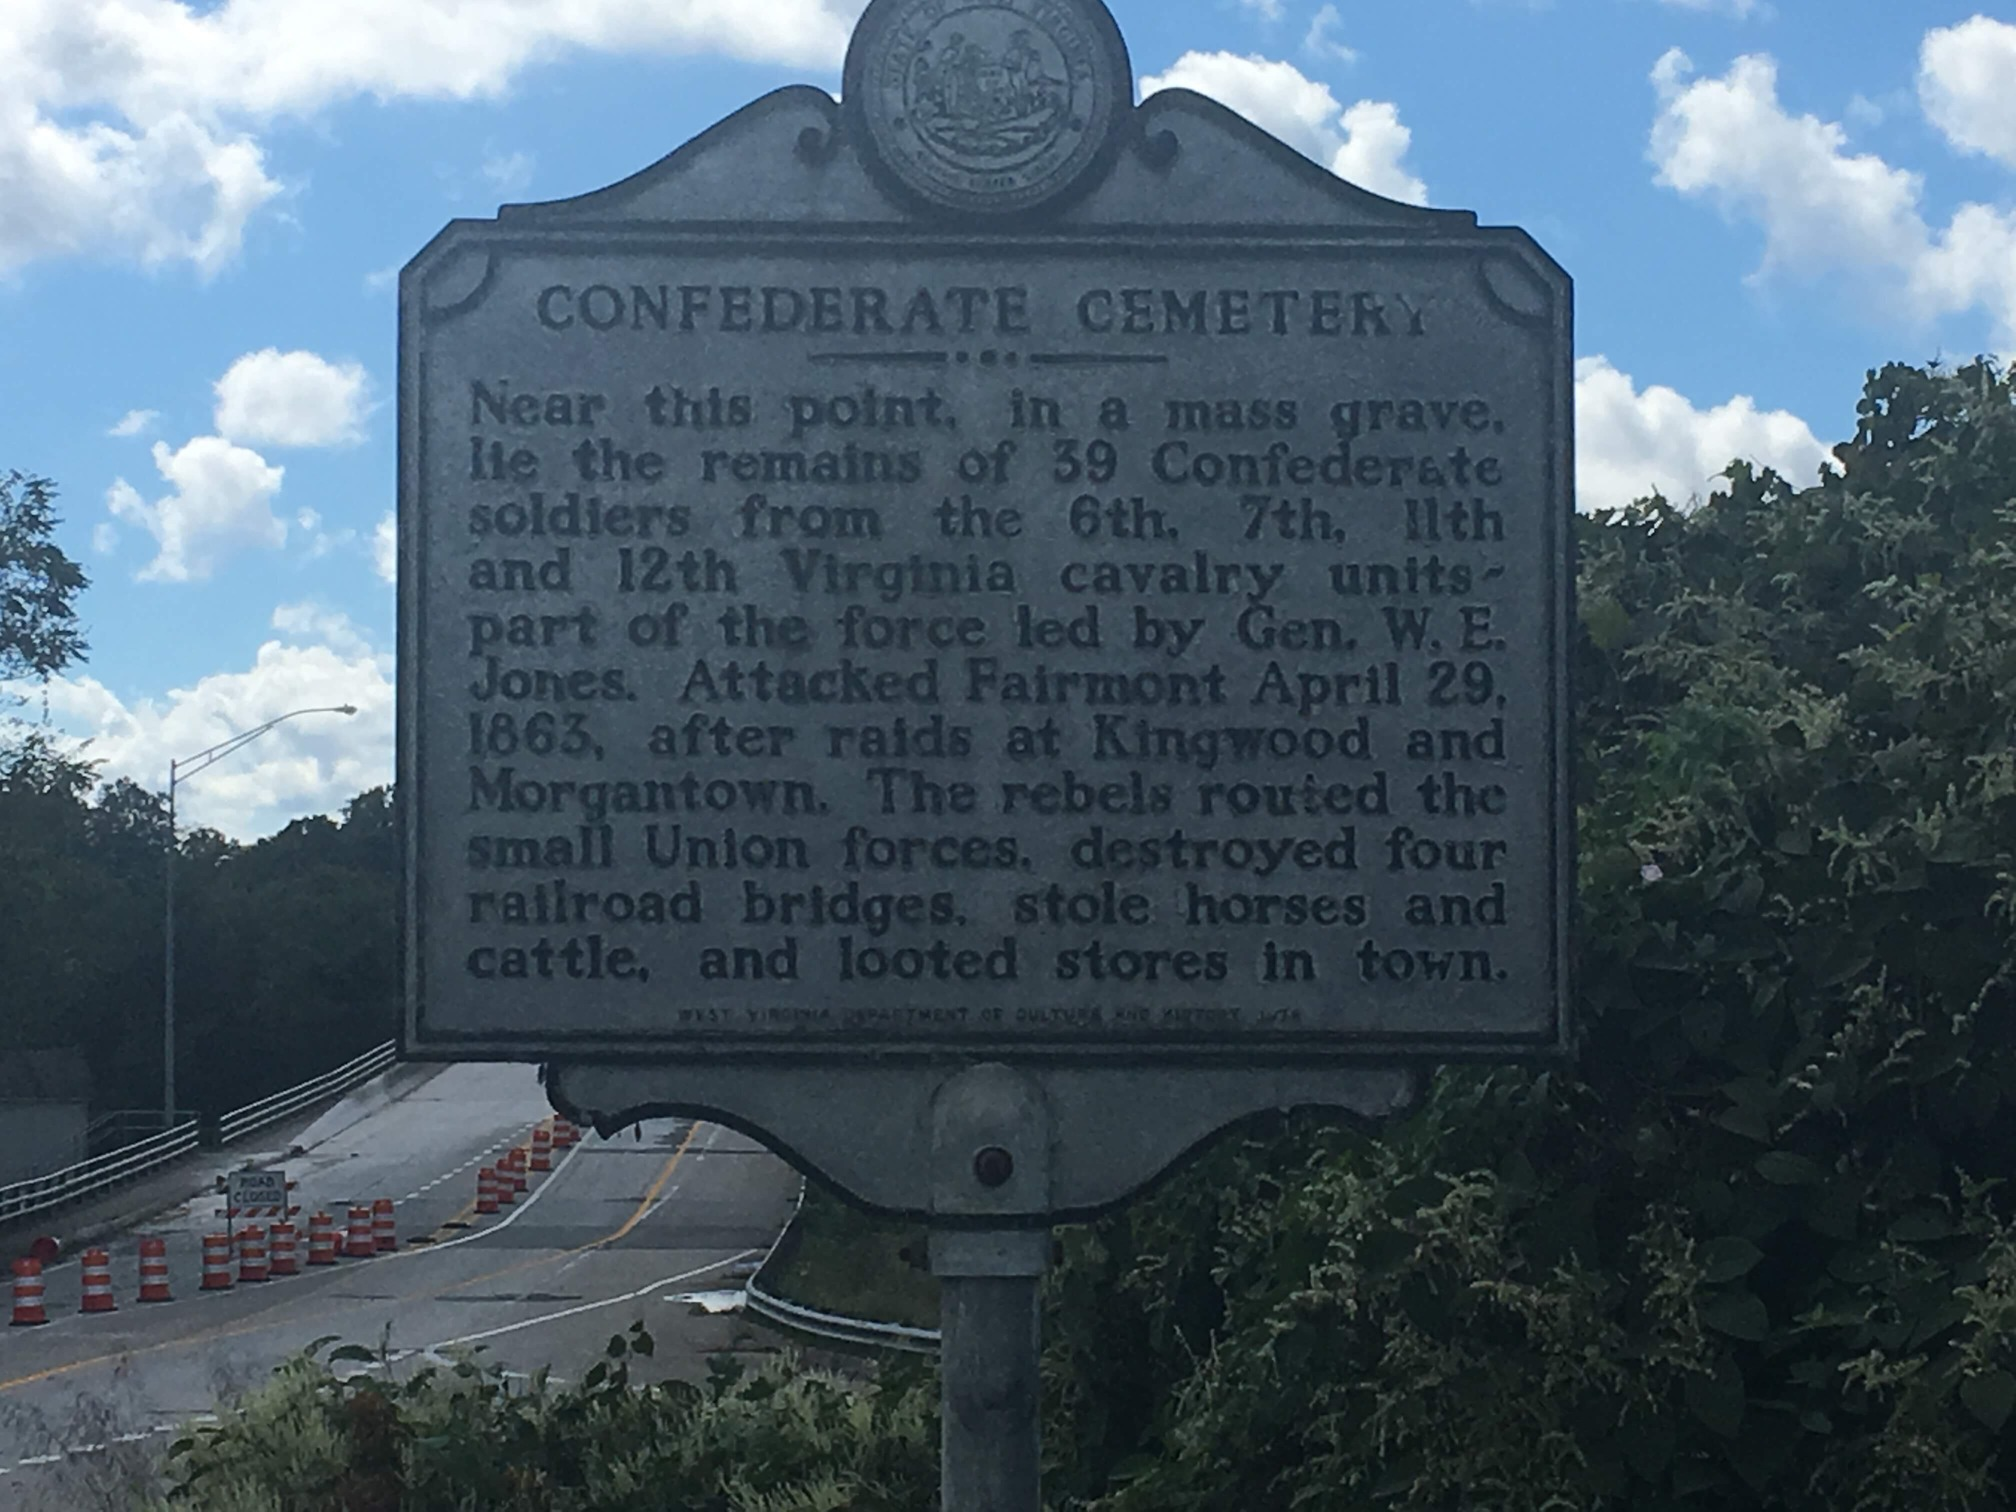 Near this marker lies a mass Confederate Grave with 39 deceased from the Battle for the Bridge.